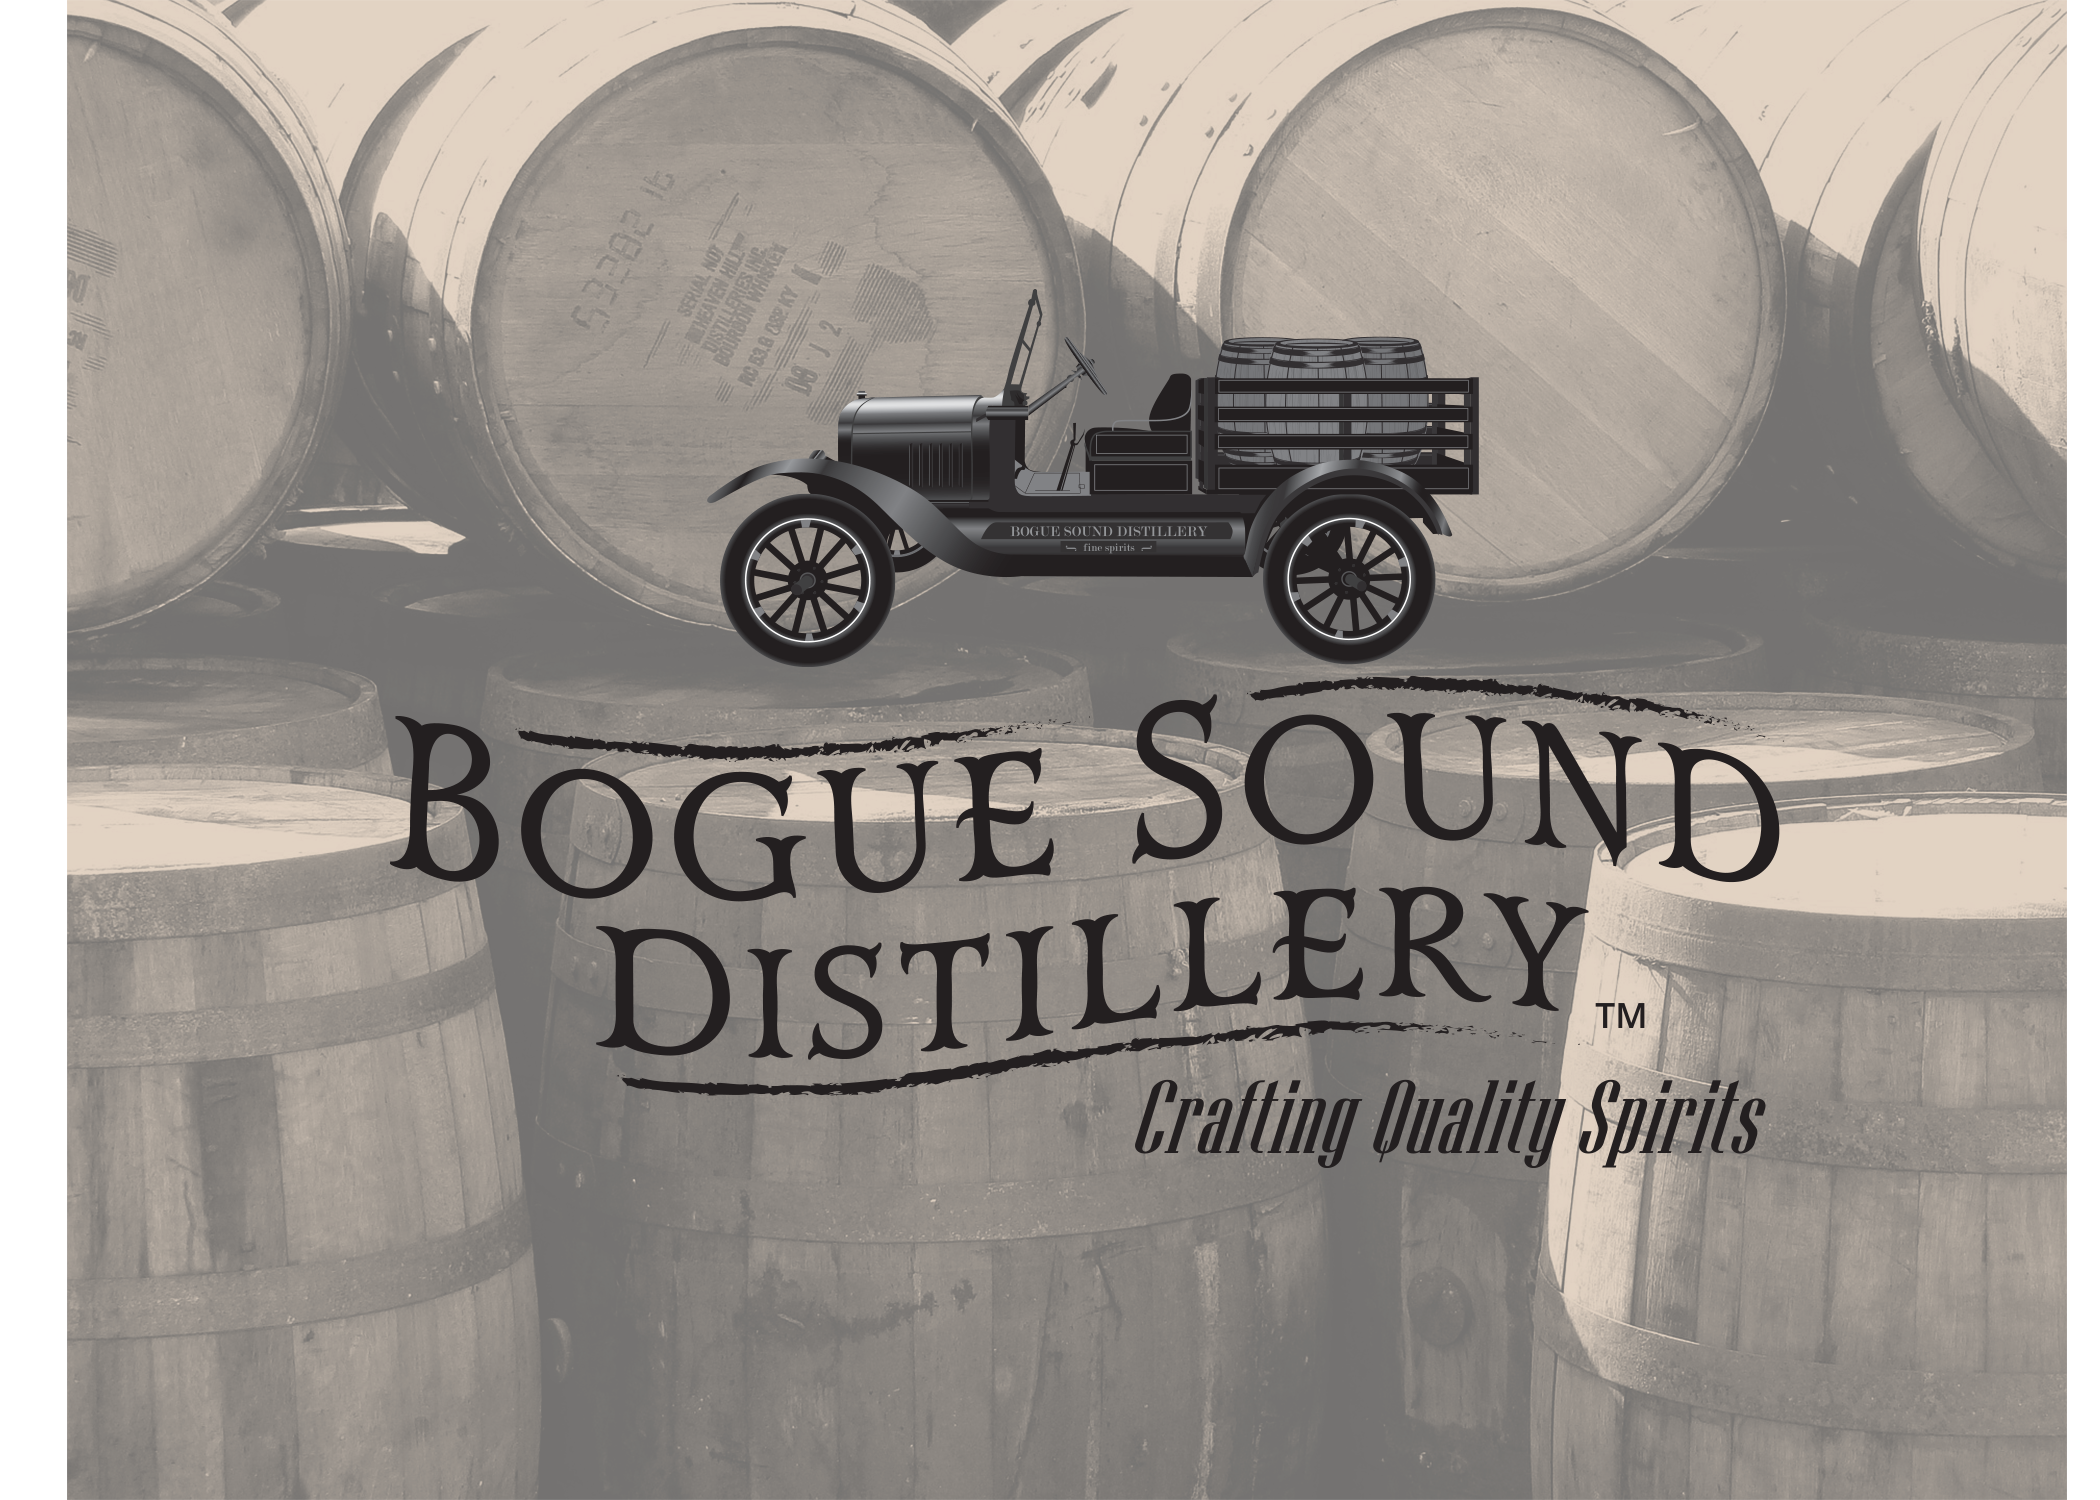 Bogue Sound Distillery